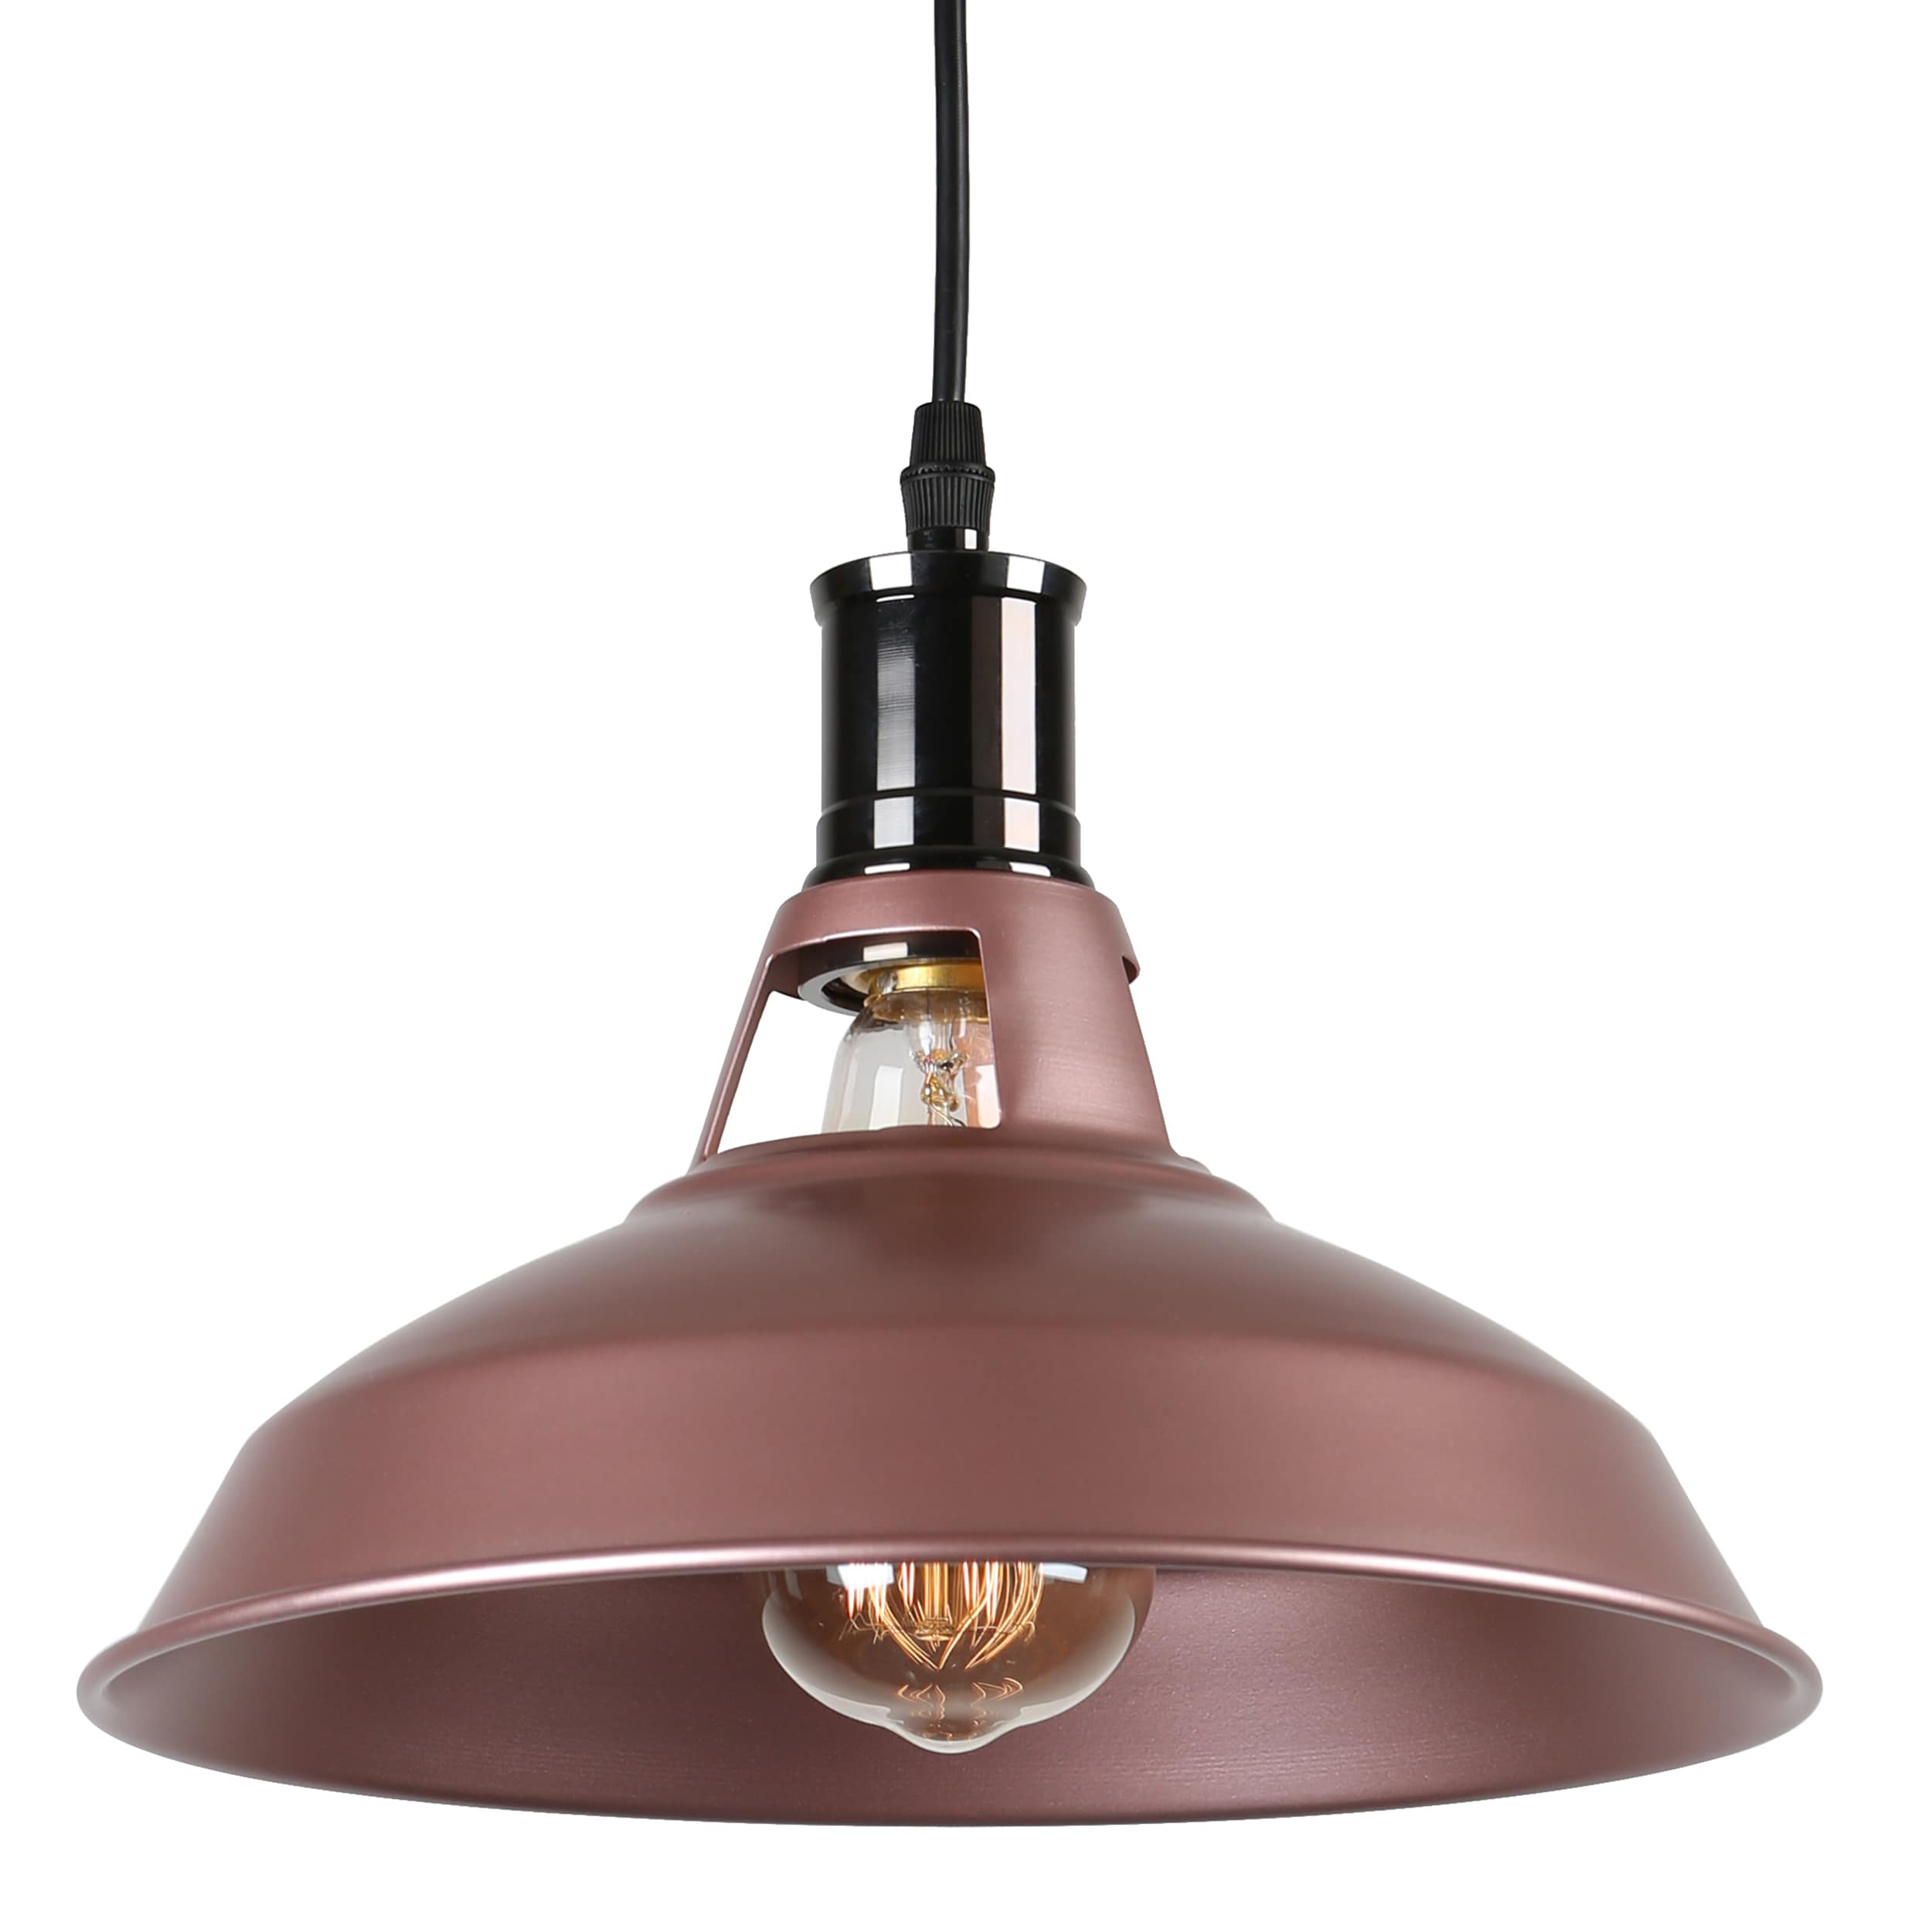 journee lighting. Journee Home \u0027Stephen\u0027 7 In Industrial Hard Wired Iron Pendant Light With Included Edison Bulb - Free Shipping Today Overstock 24186478 Lighting